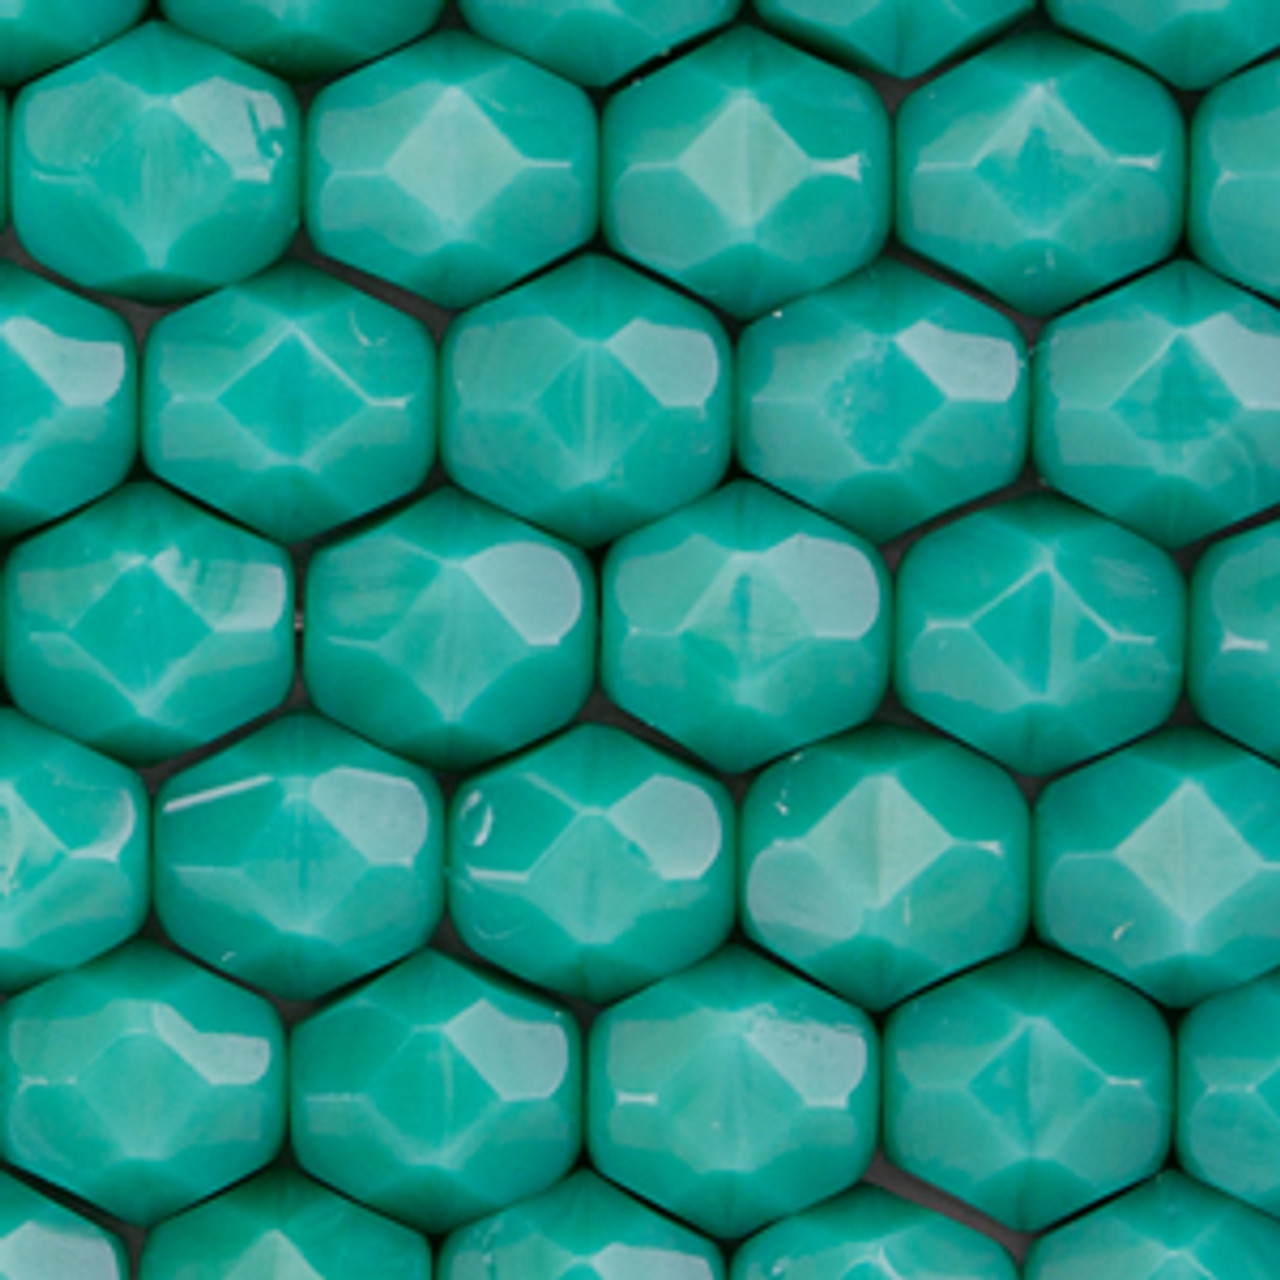 Persian Turquoise 6mm 25 Firepolish Czech glass Faceted Round Beads